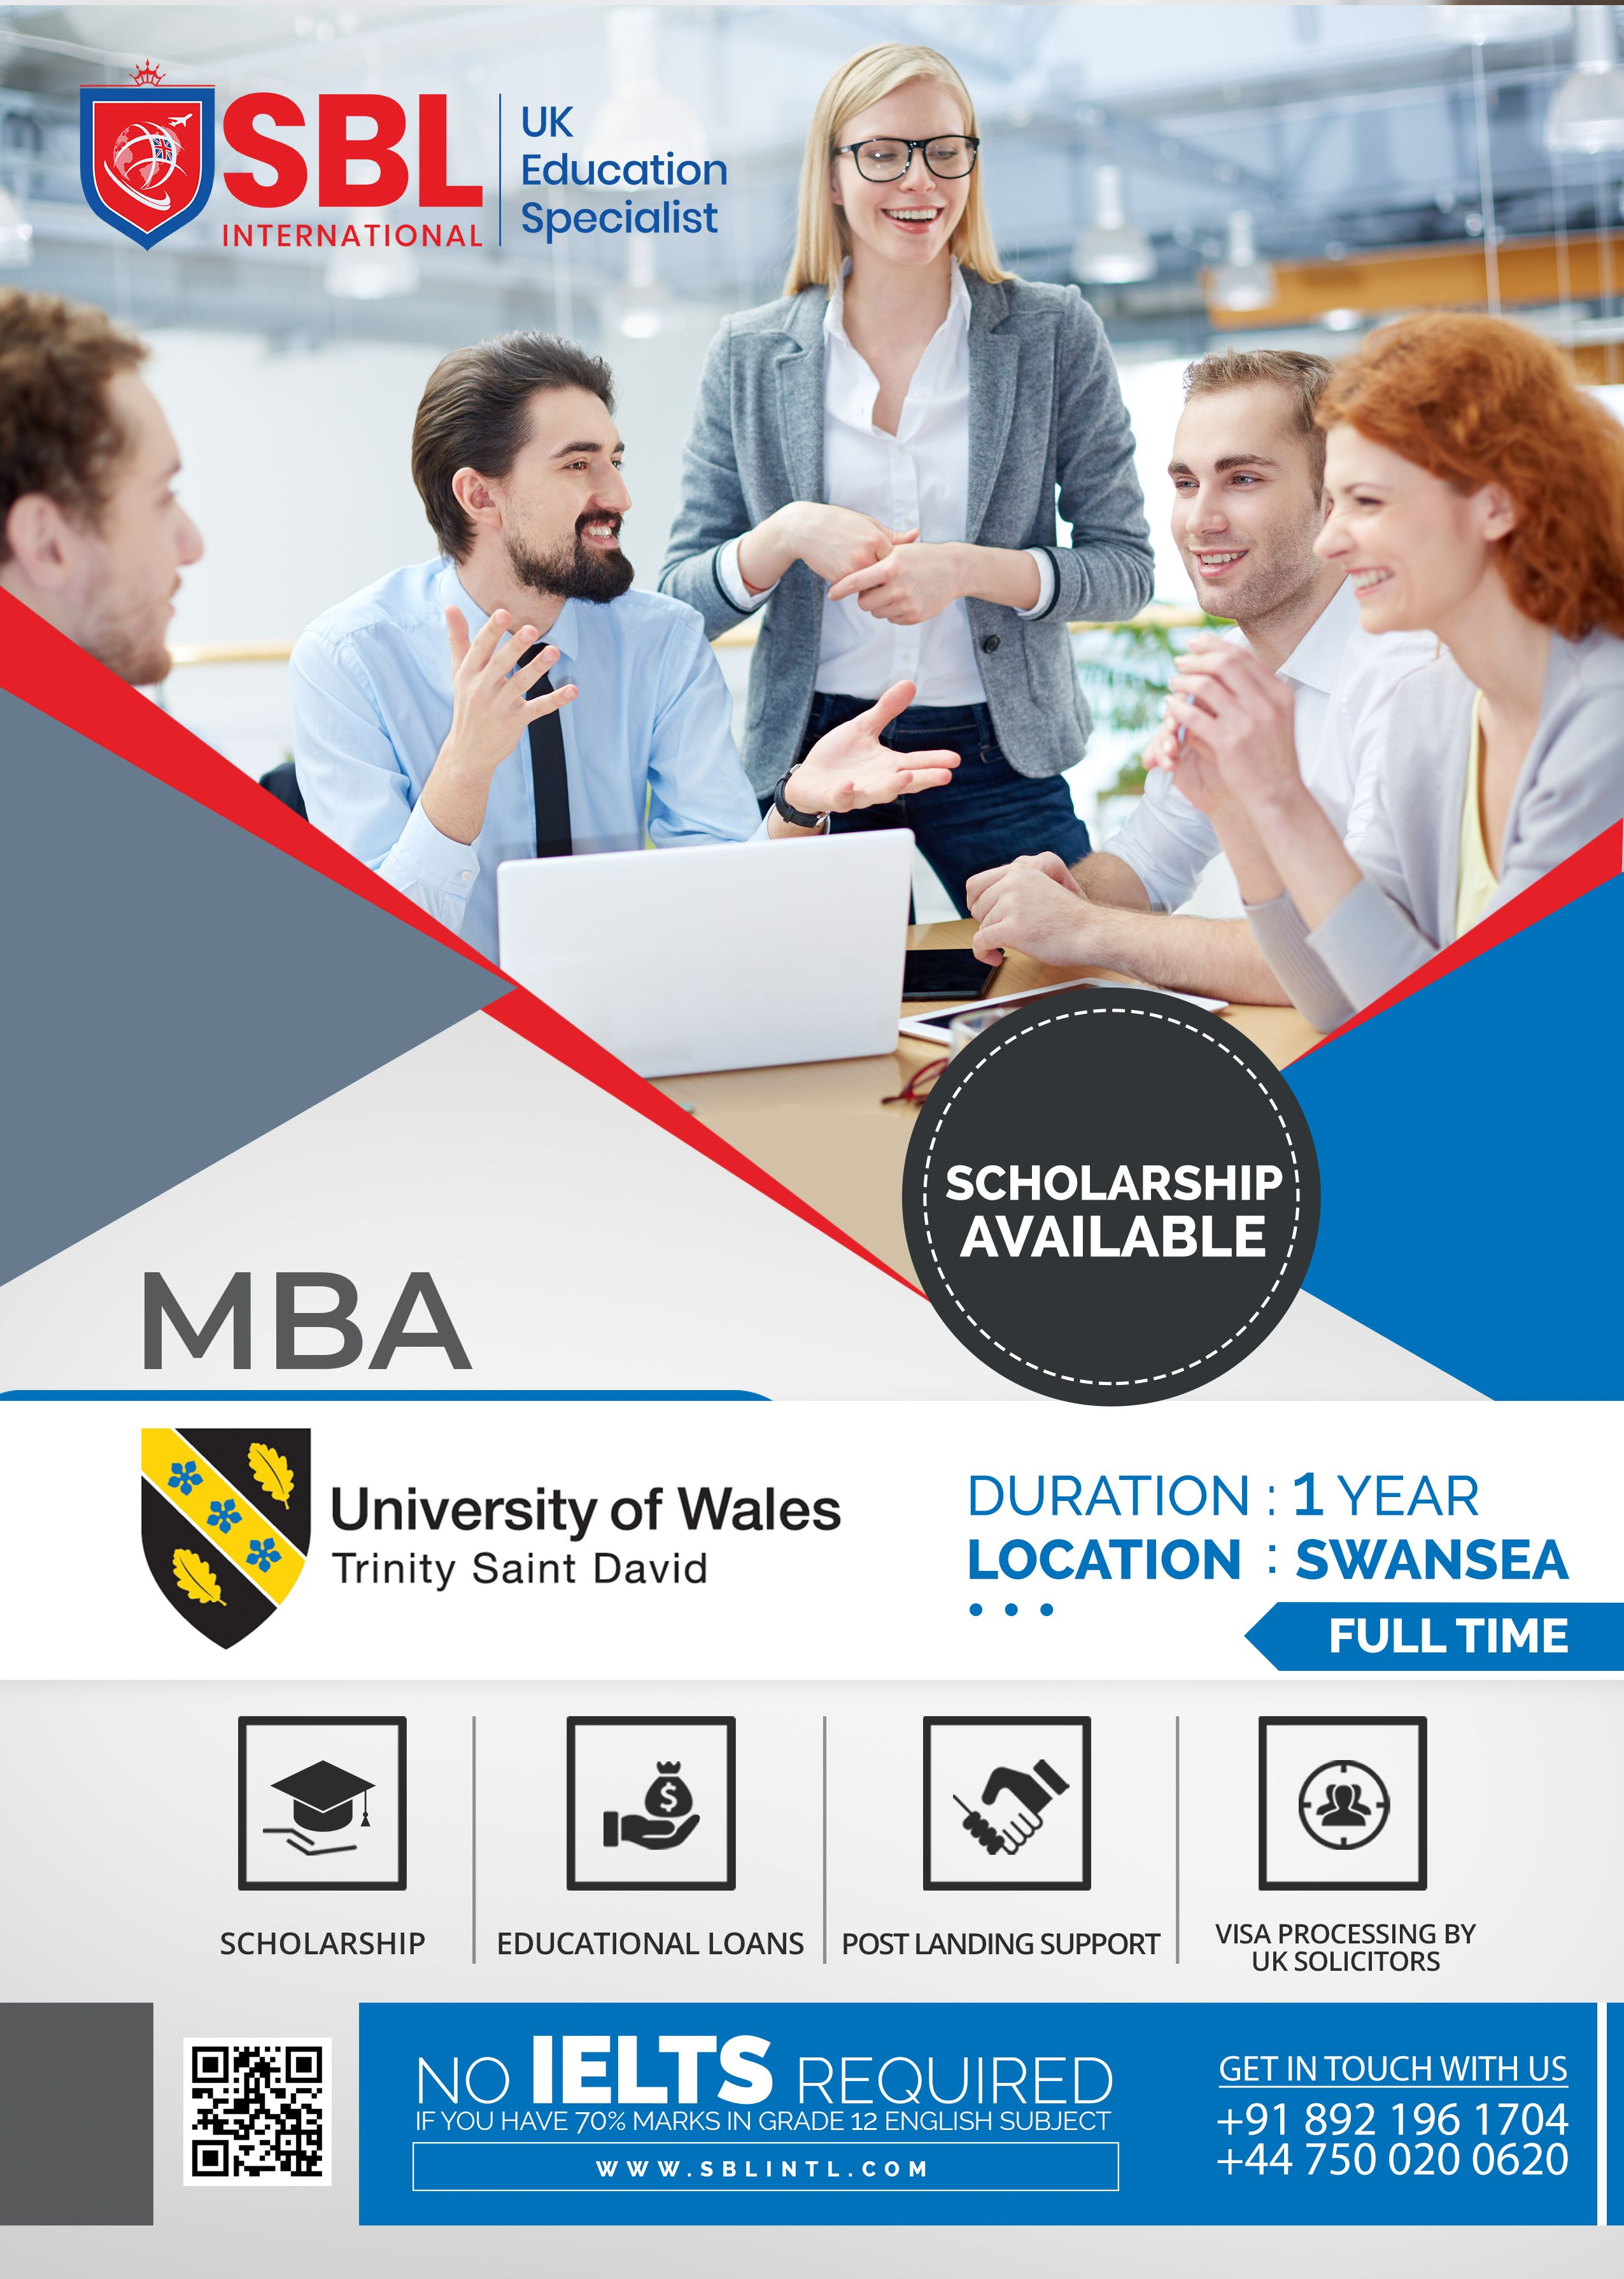 Master Of Business Administration University Of Wales Location Swansea Duration 1 Year Uk Education Overseas Education